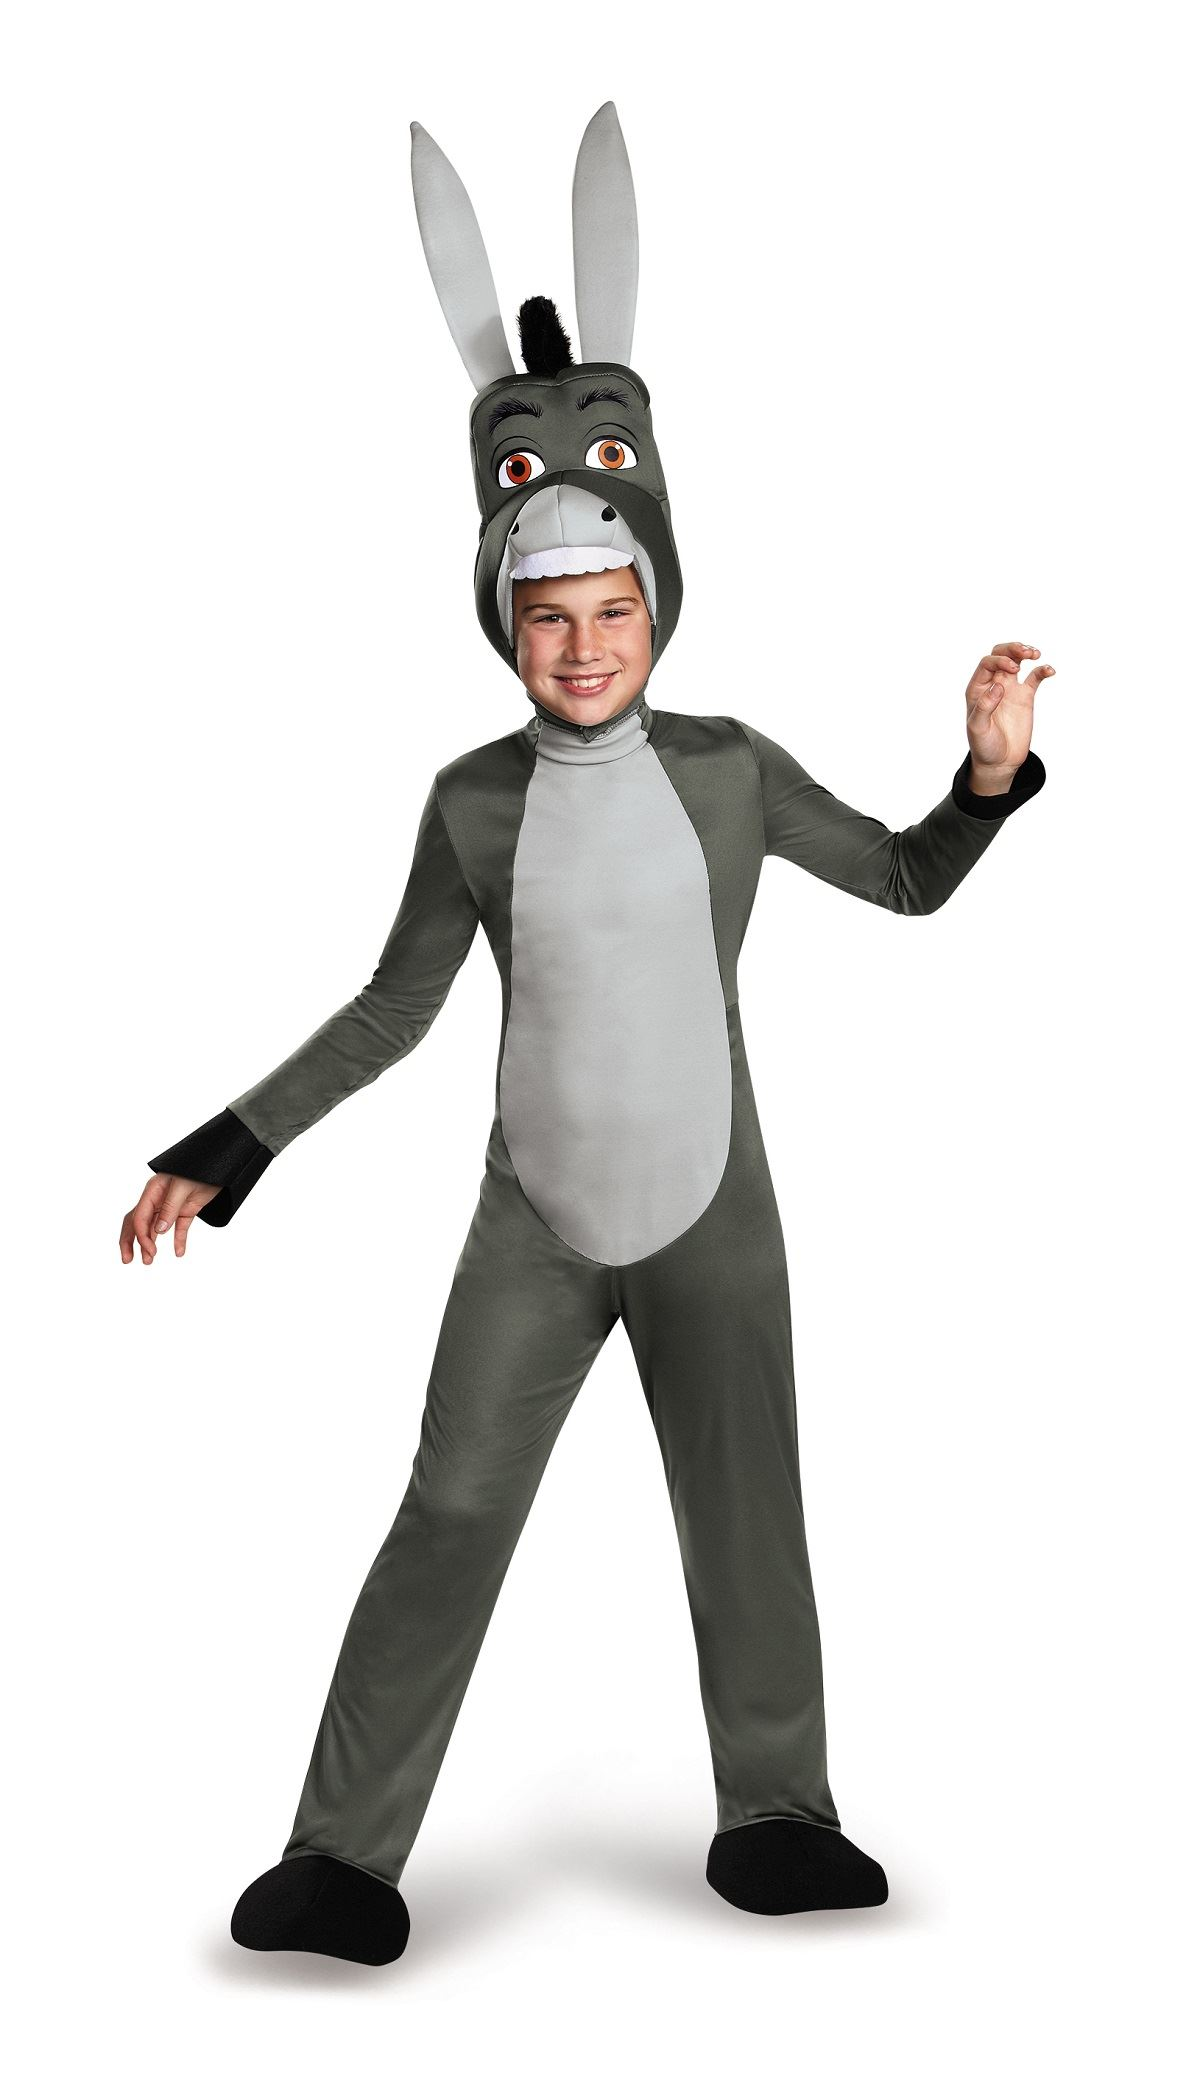 Donkey costume - photo#12